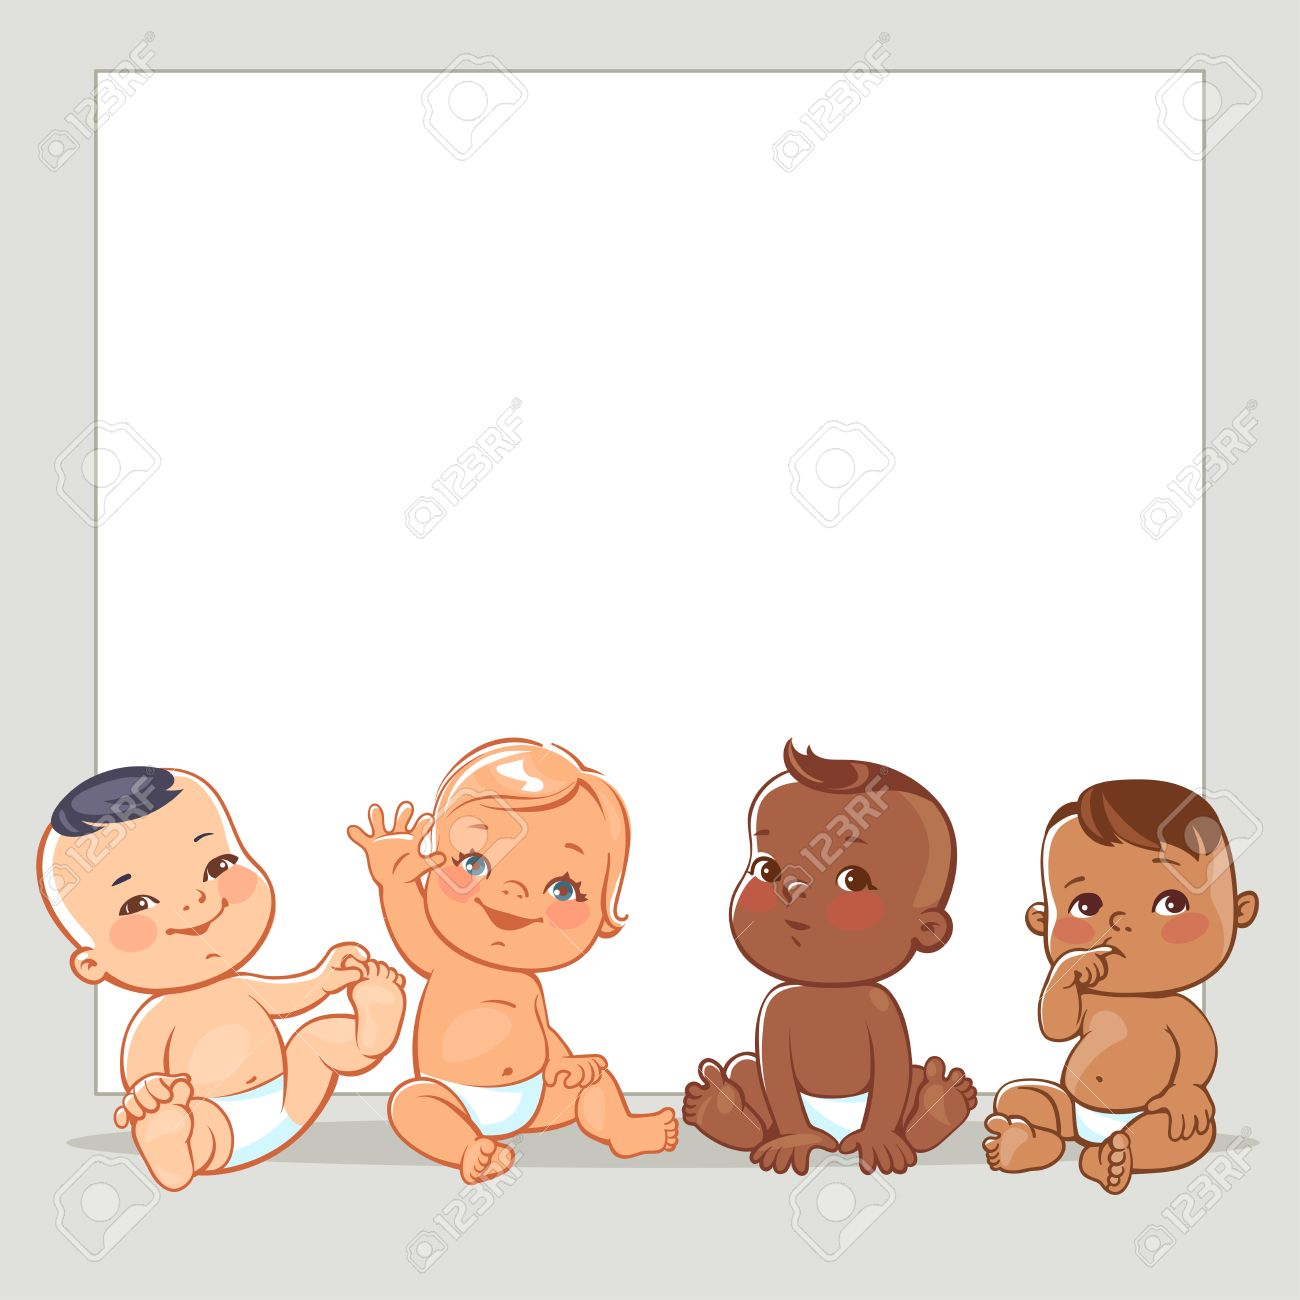 Cute little babies in diaper. Happy children of different nations.Smiling boys and girls of different races. Multinational kids. Diverse nationalities. Toddlers at blank banner. Vector illustration. - 76445371